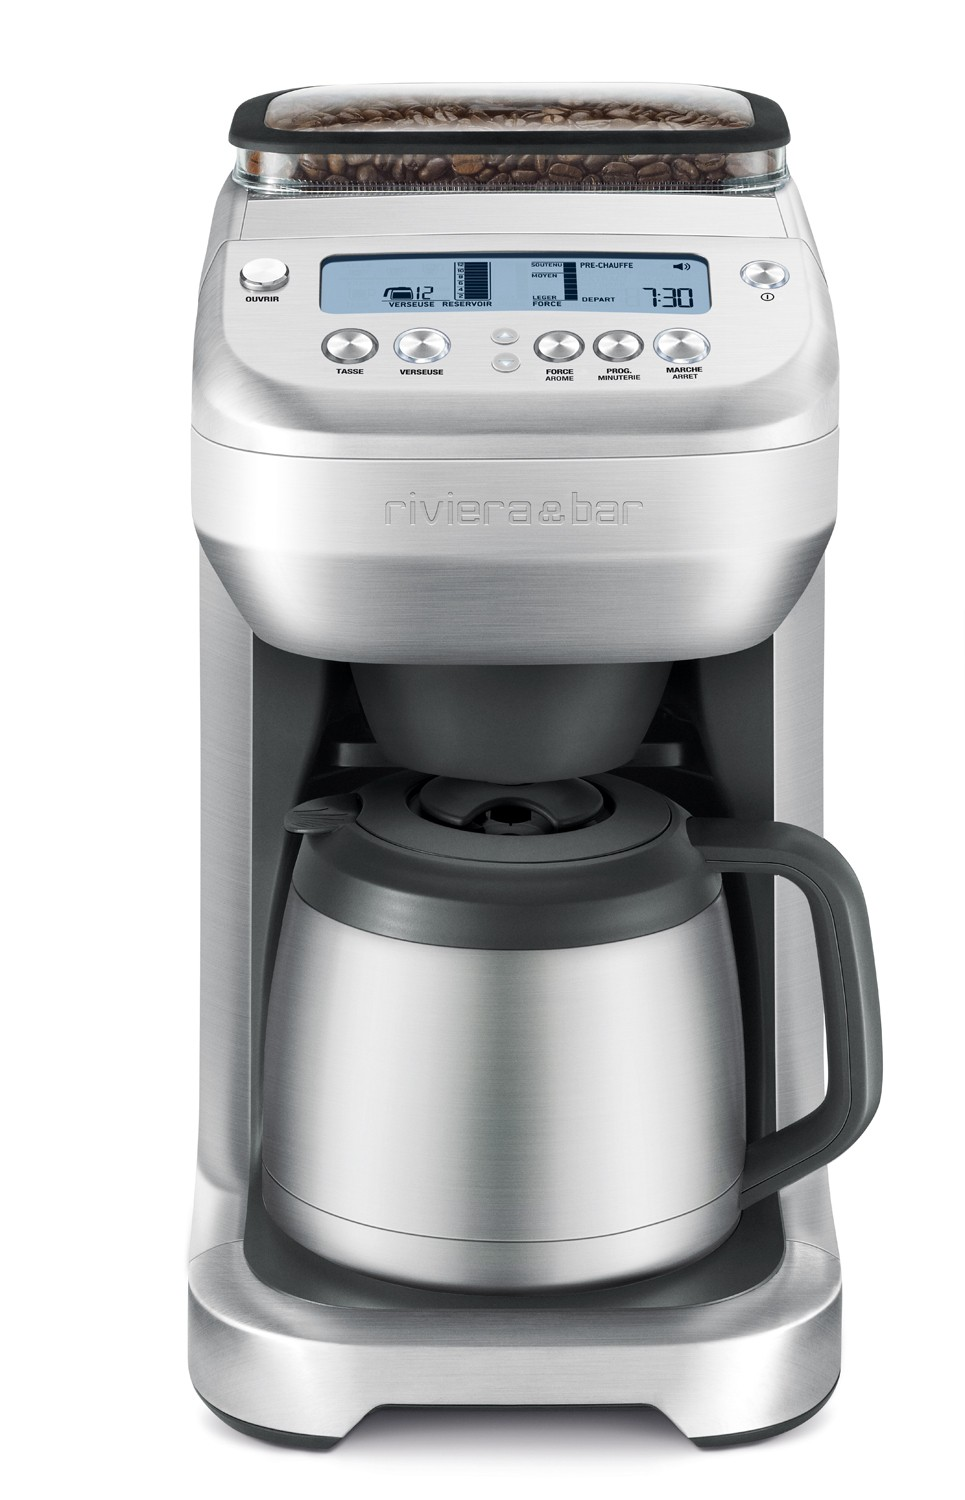 Cafeti re filtre cf865a avec broyeur int gr riviera bar - Machine a cafe broyeur integre ...